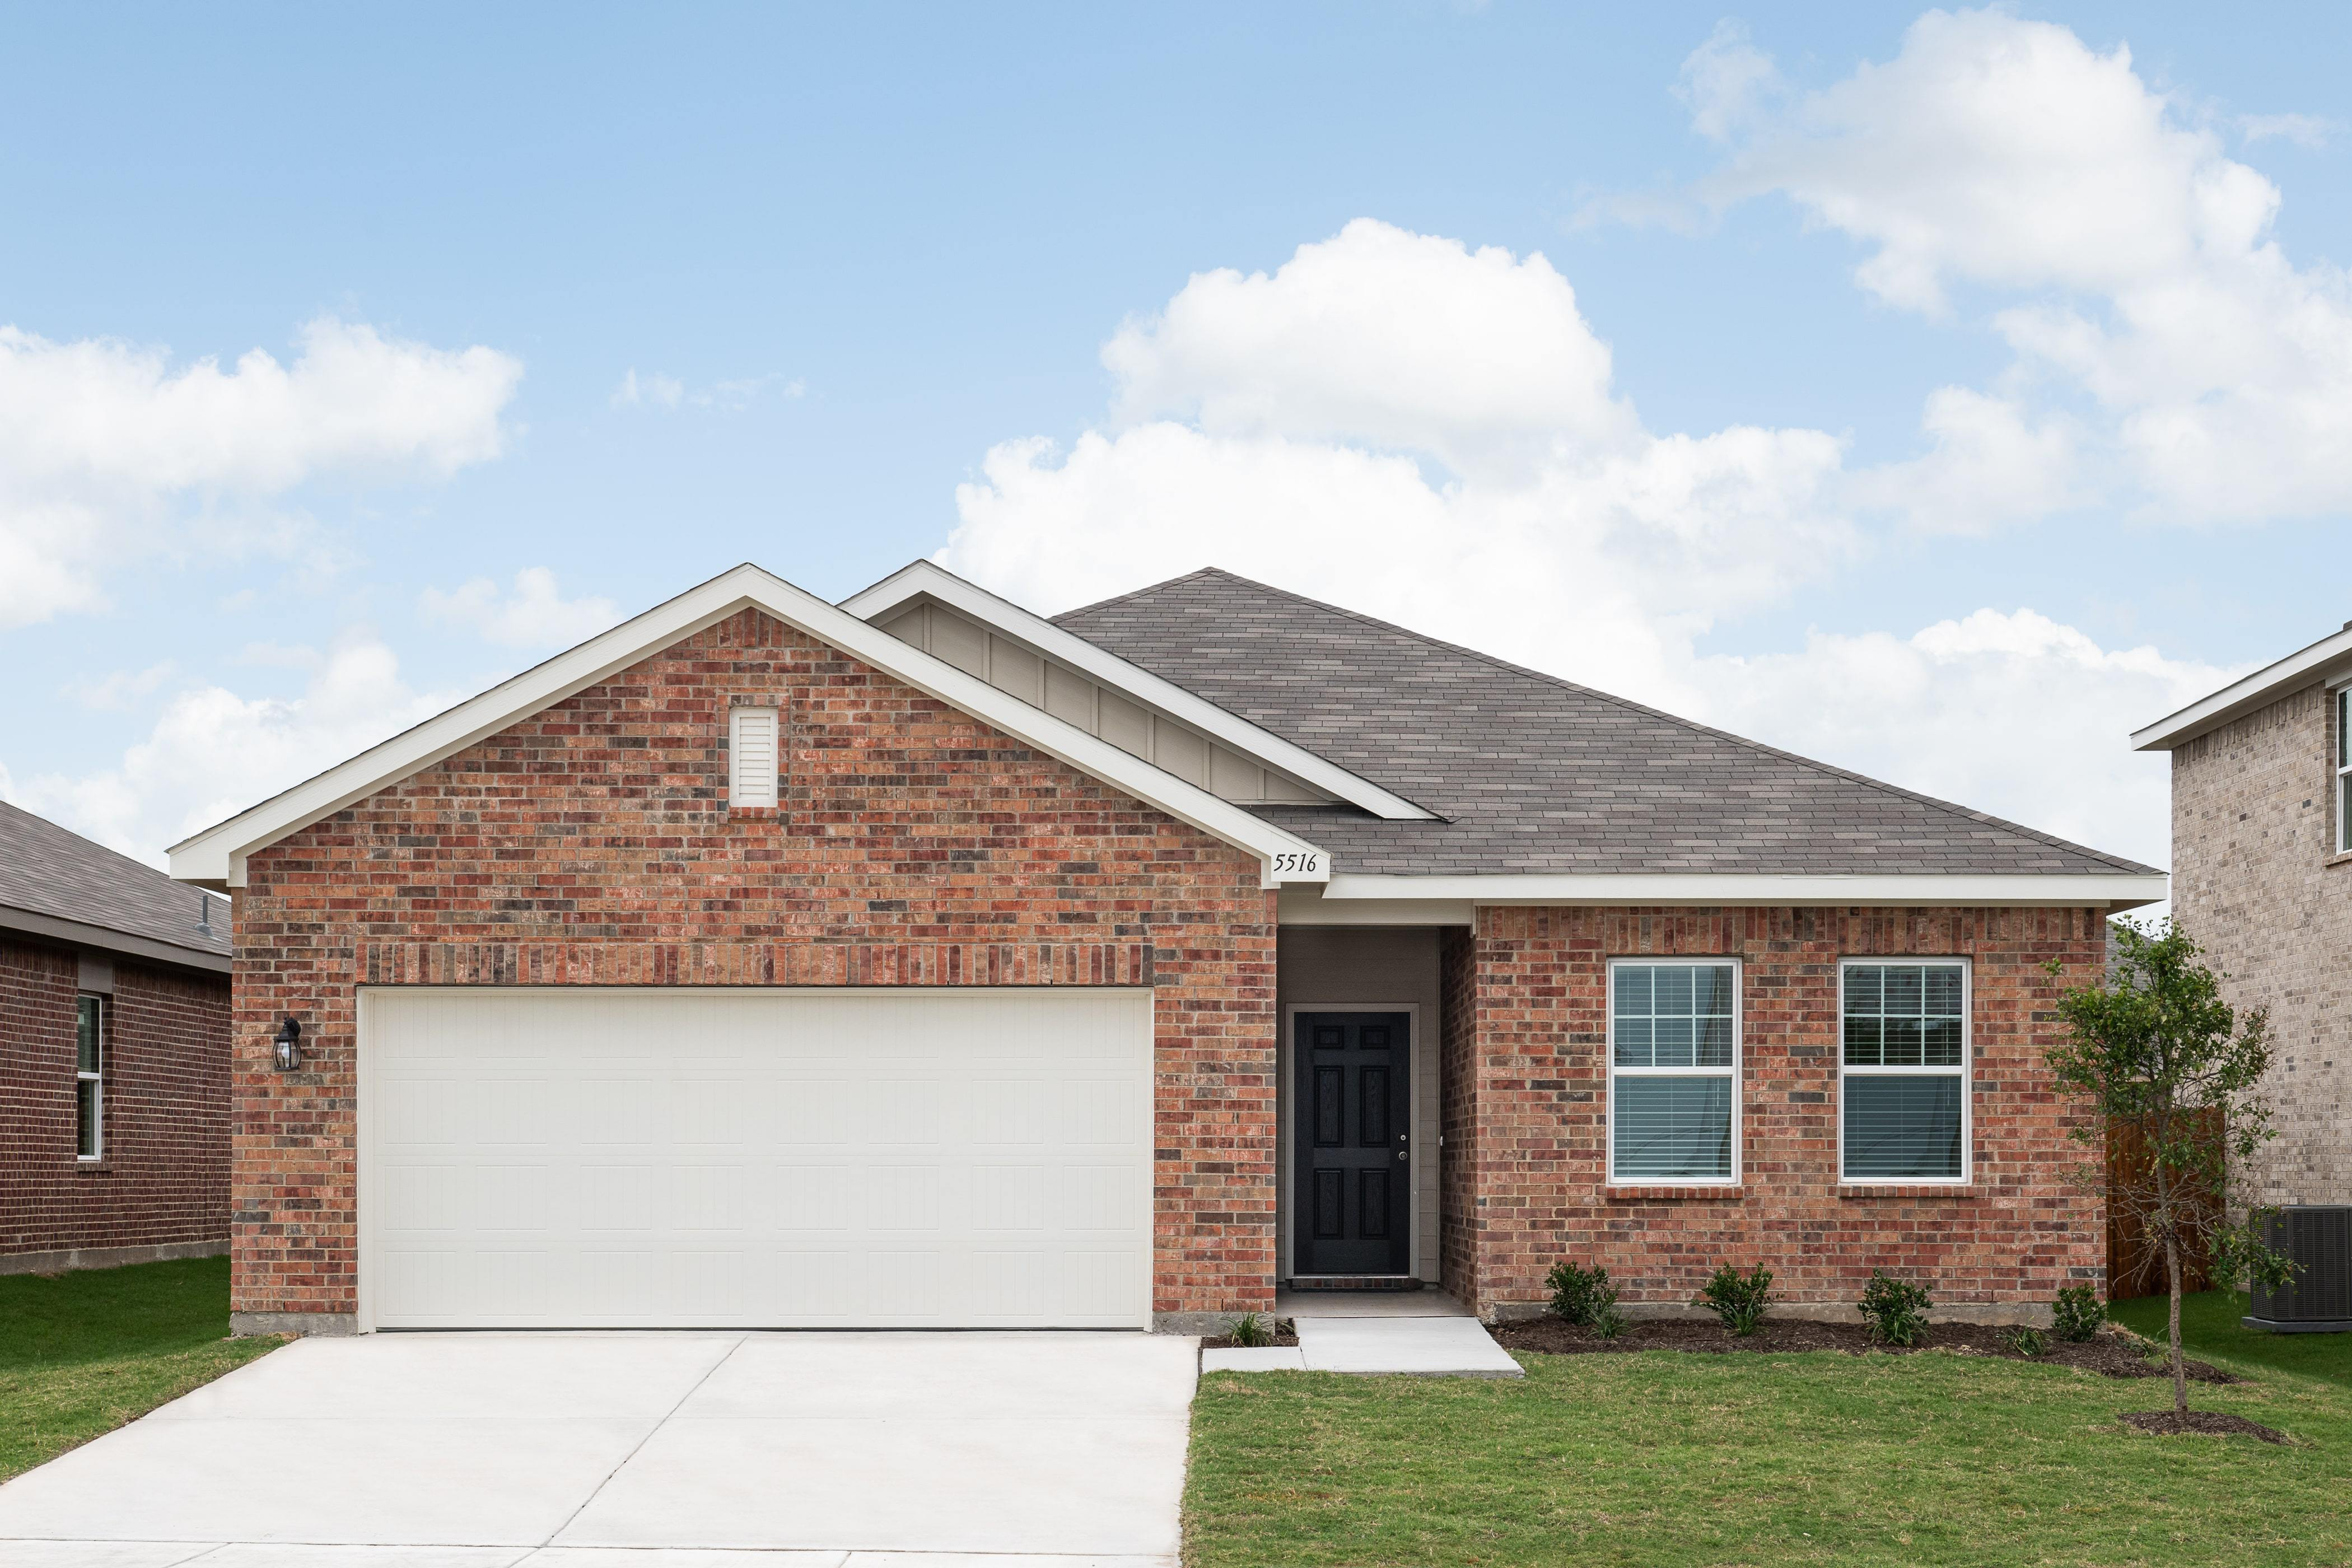 'McPherson Village' by Starlight Homes-Dallas in Fort Worth